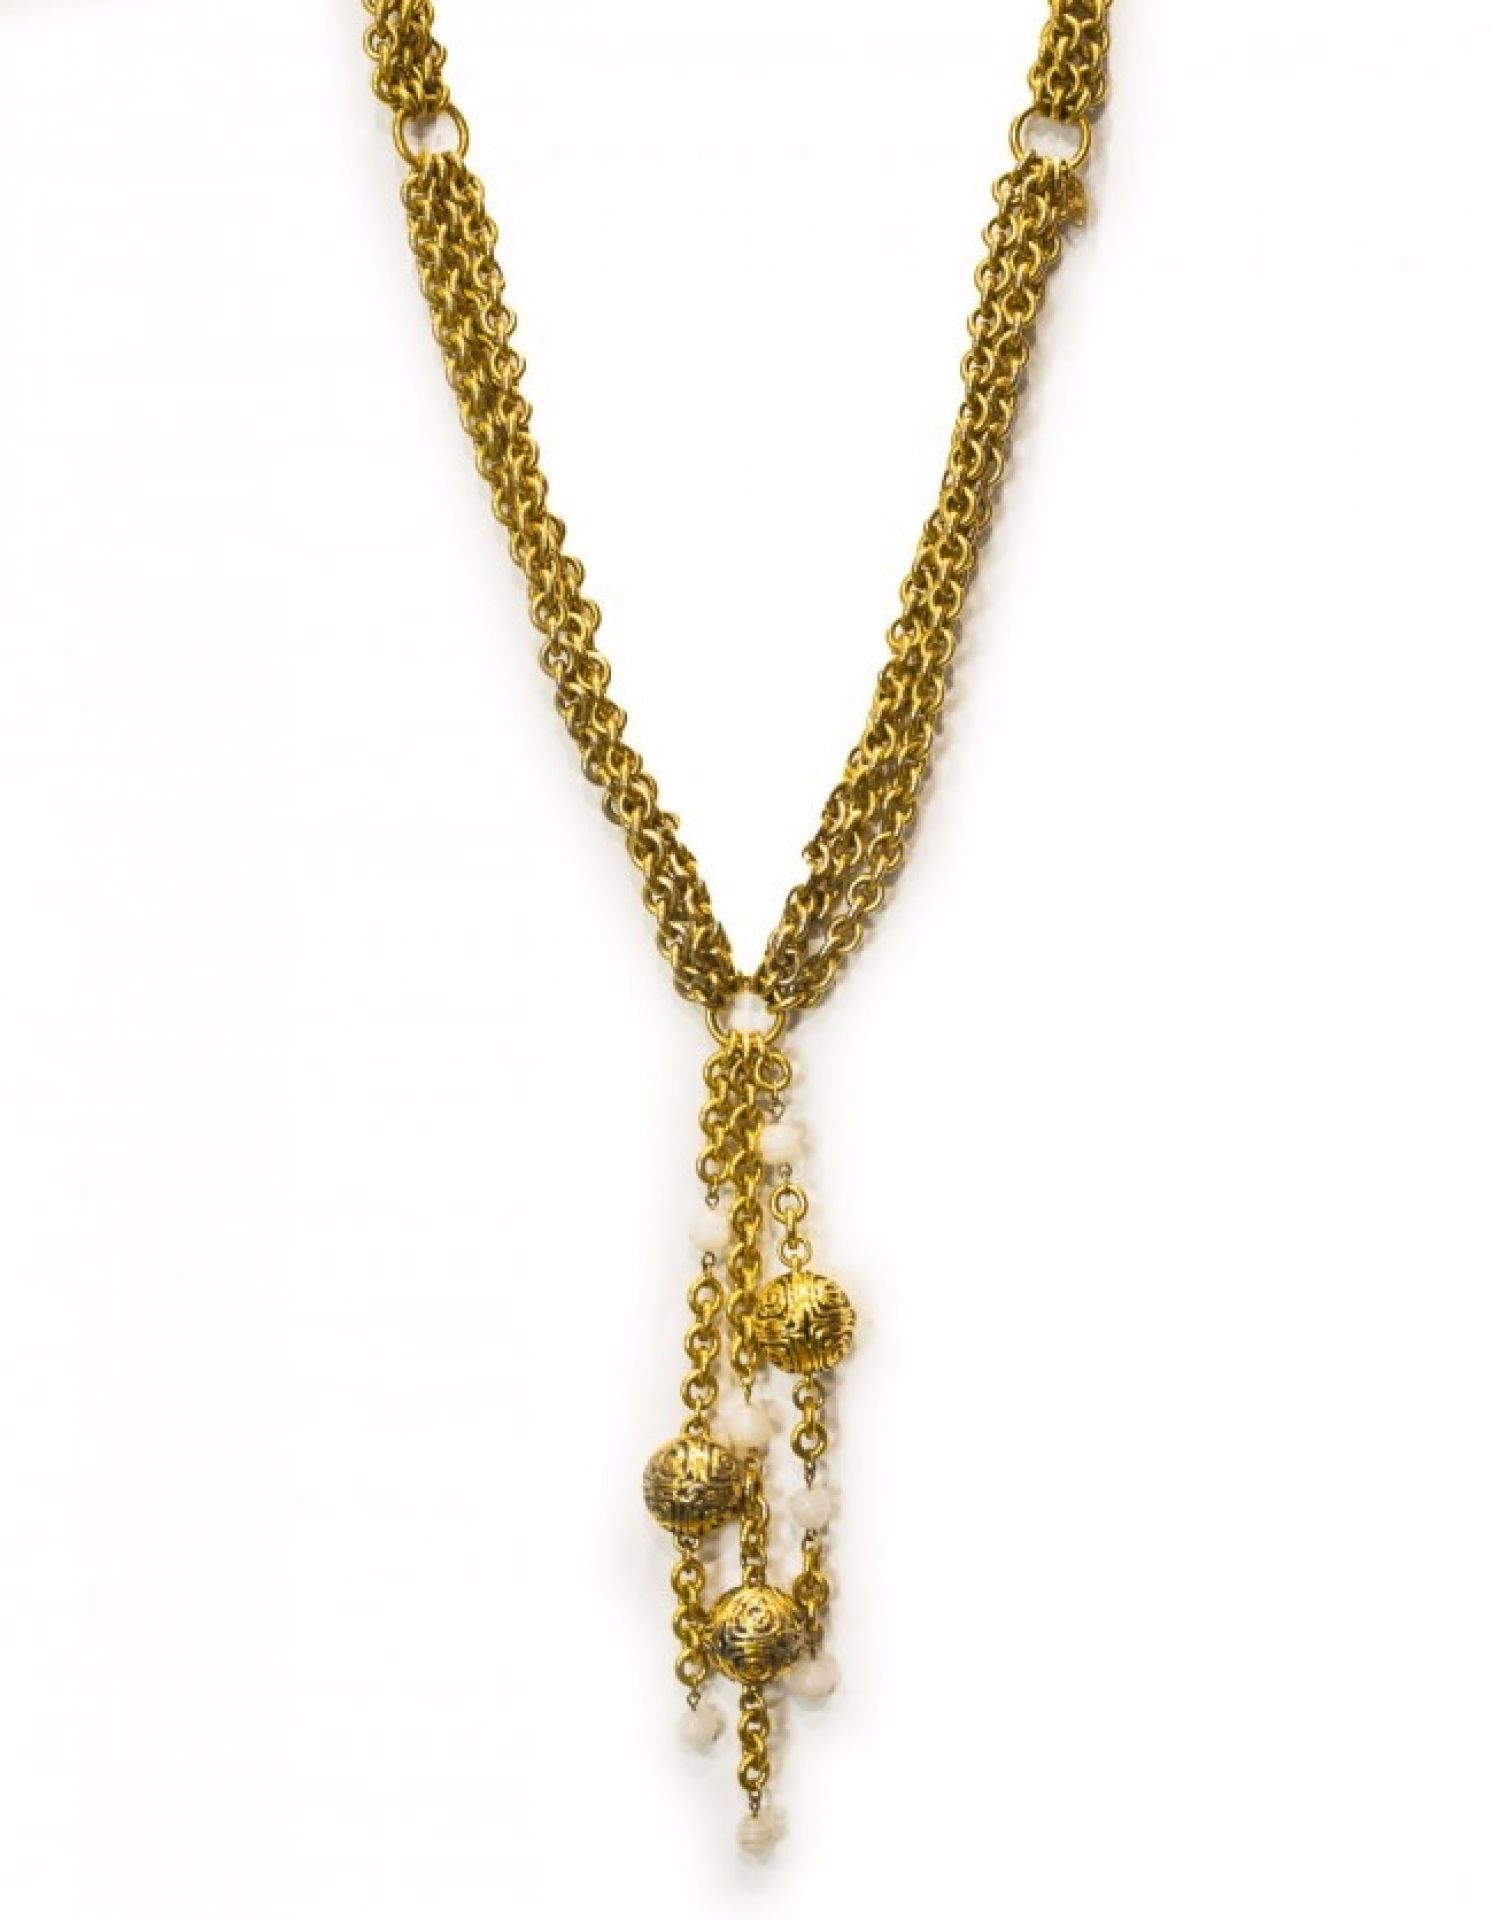 Chanel Vintage Goldtone Triple-Chain Ball Necklace